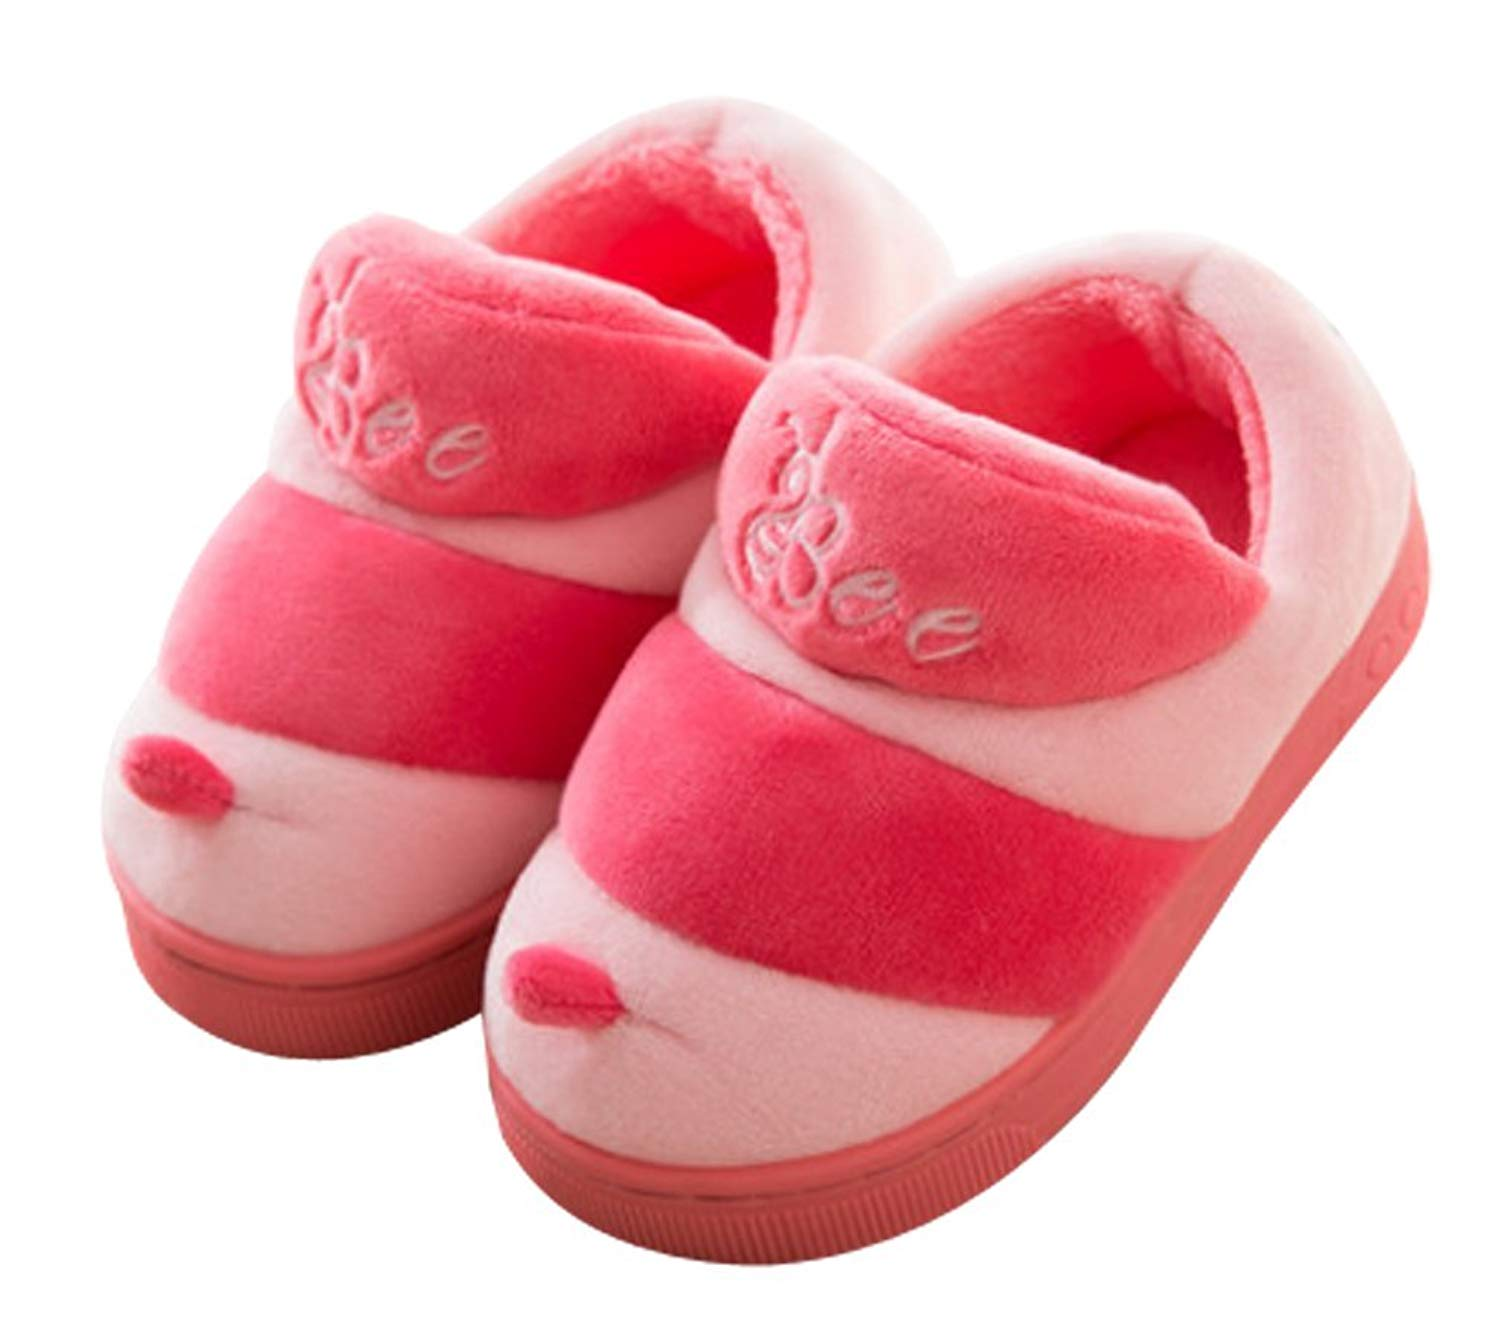 ff4b6ac484e8 Get Quotations · Cattior Toddler Coral Warm House Indoor Fluffy Boot  Slippers